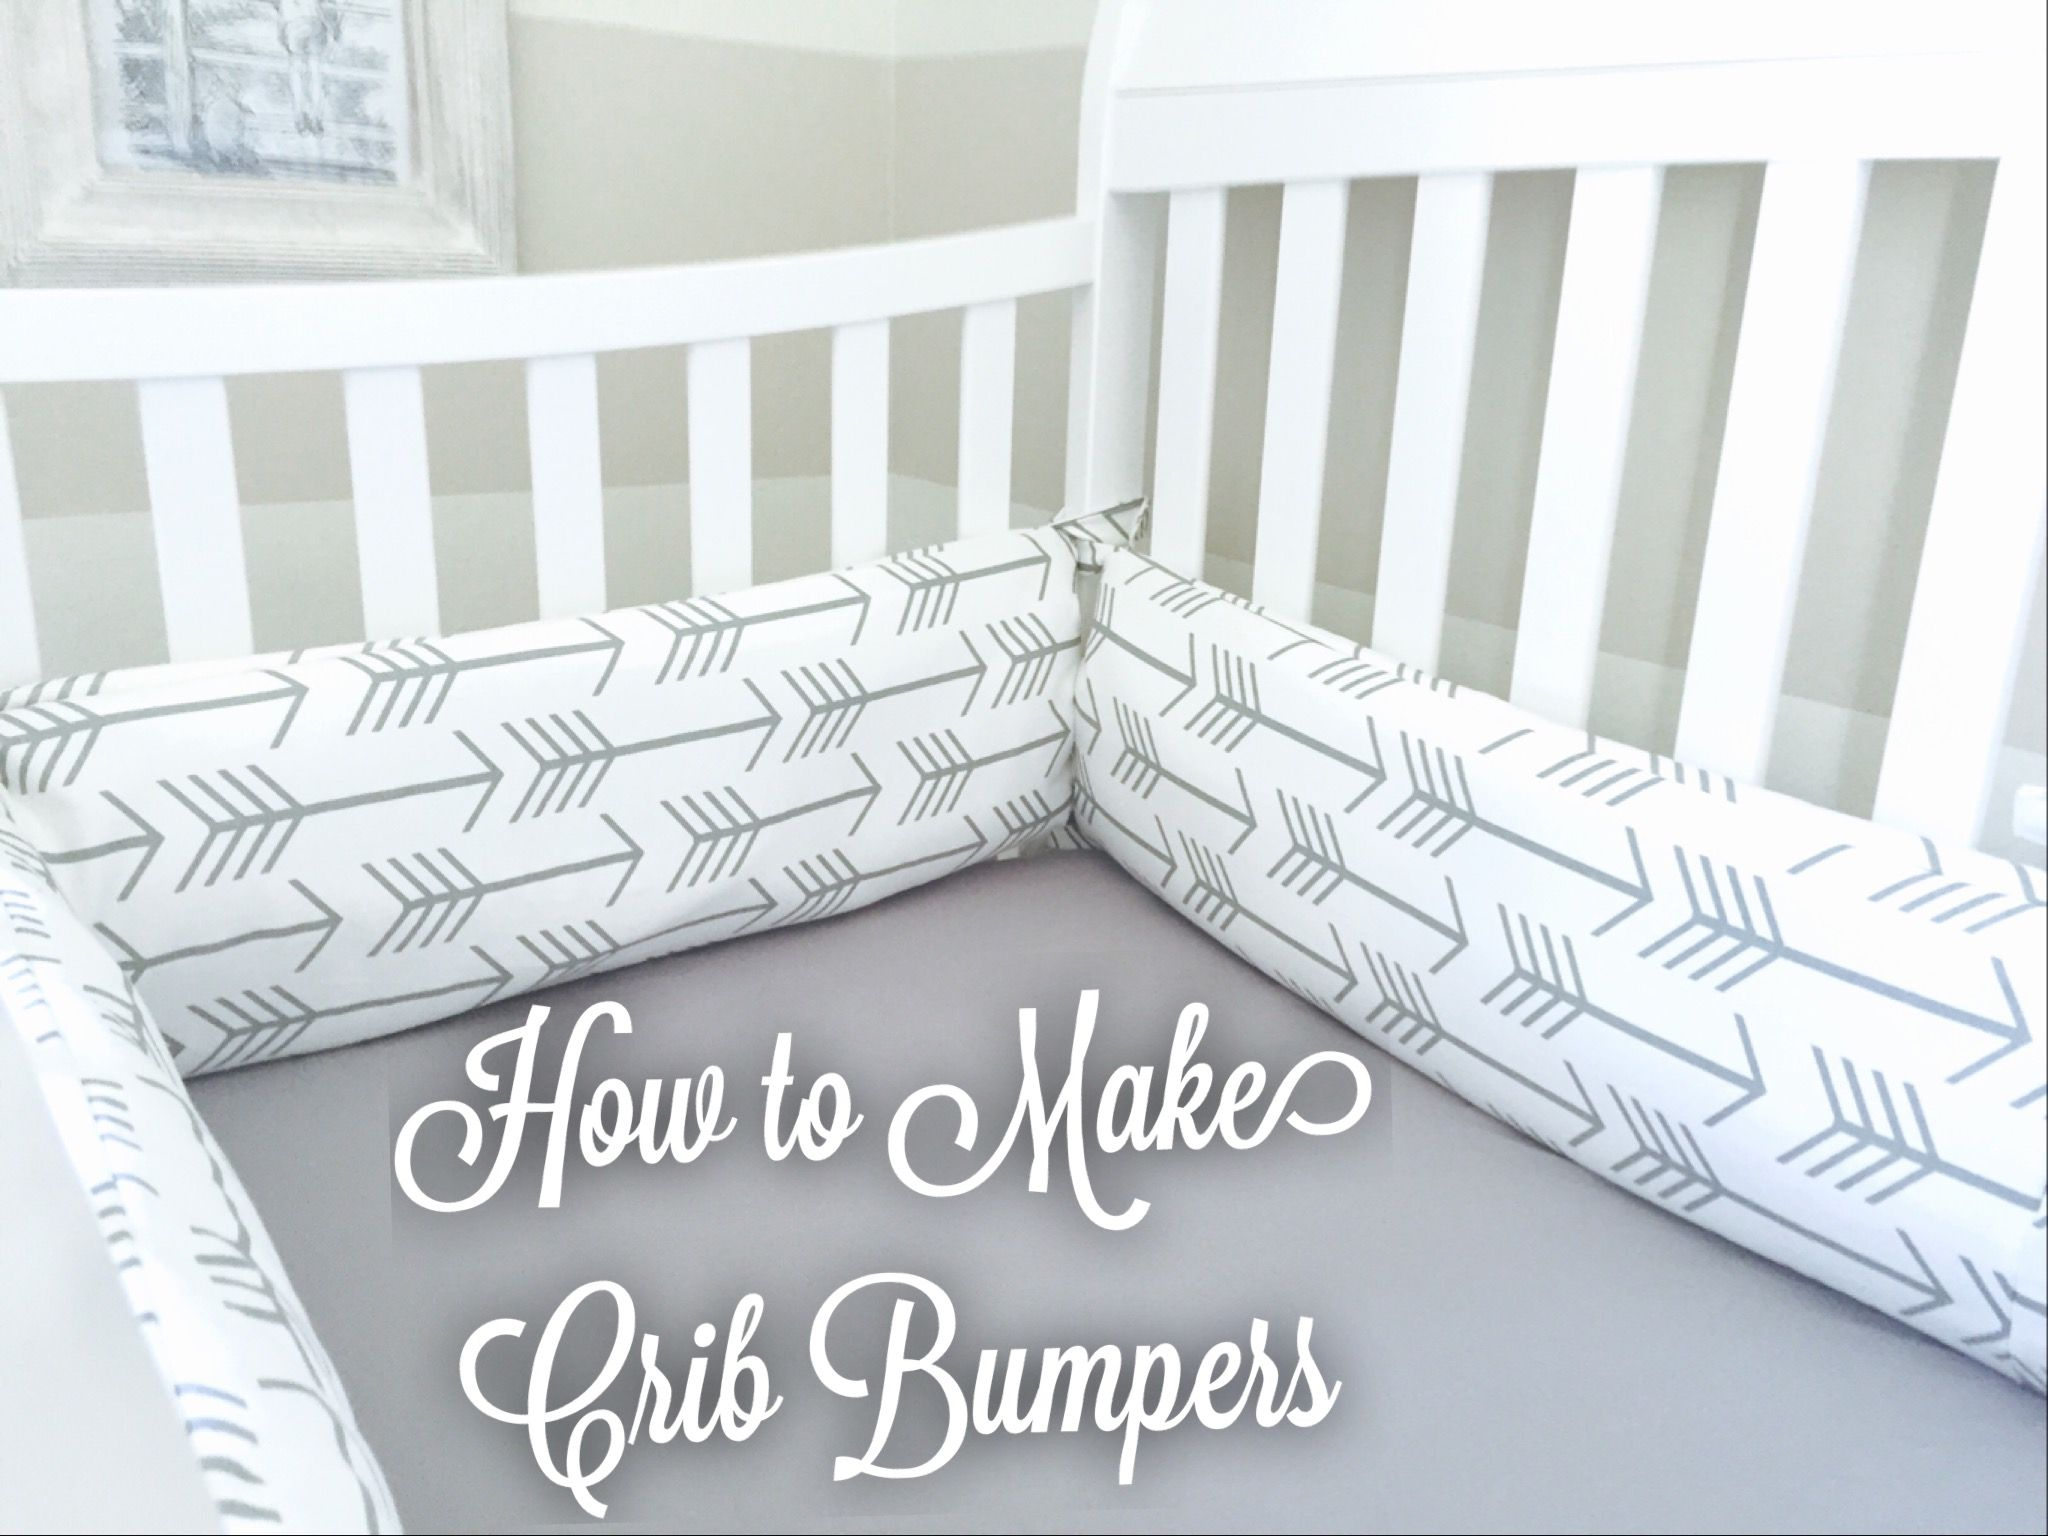 Baby Boy Nursery Part 3 How To Make Crib Bumpers Miss Bizi Bee Baby Girl Nursery Diy Baby Crib Bumpers Baby Nursery Diy